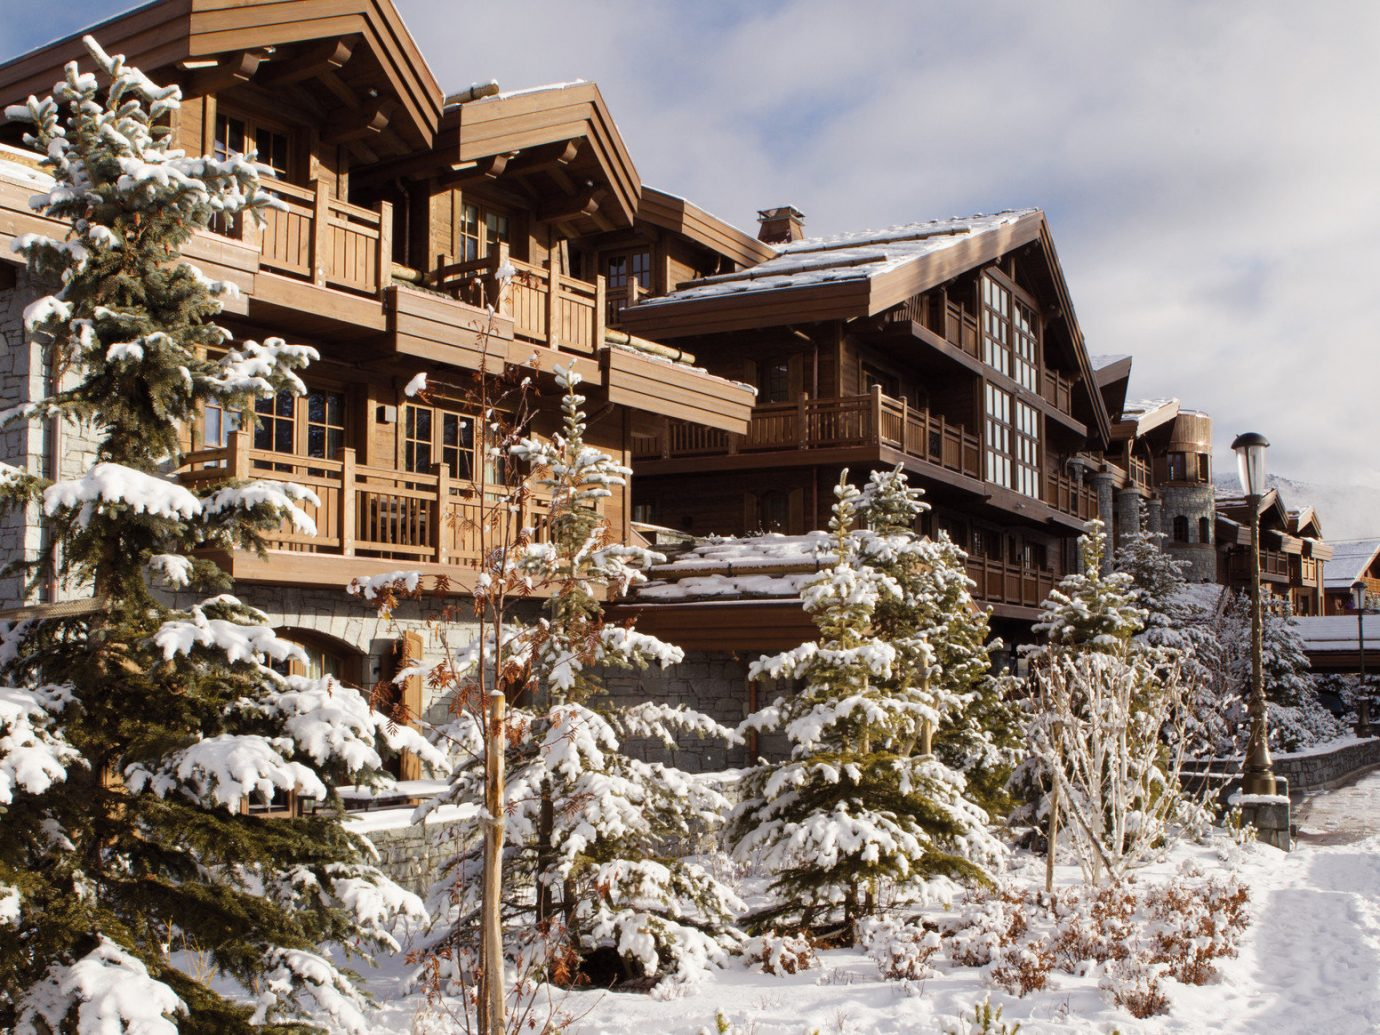 building Cabin Exterior Greenery Lodge remote Rustic ski lodge snow trees Trip Ideas Winter outdoor sky tree house geological phenomenon season Resort home